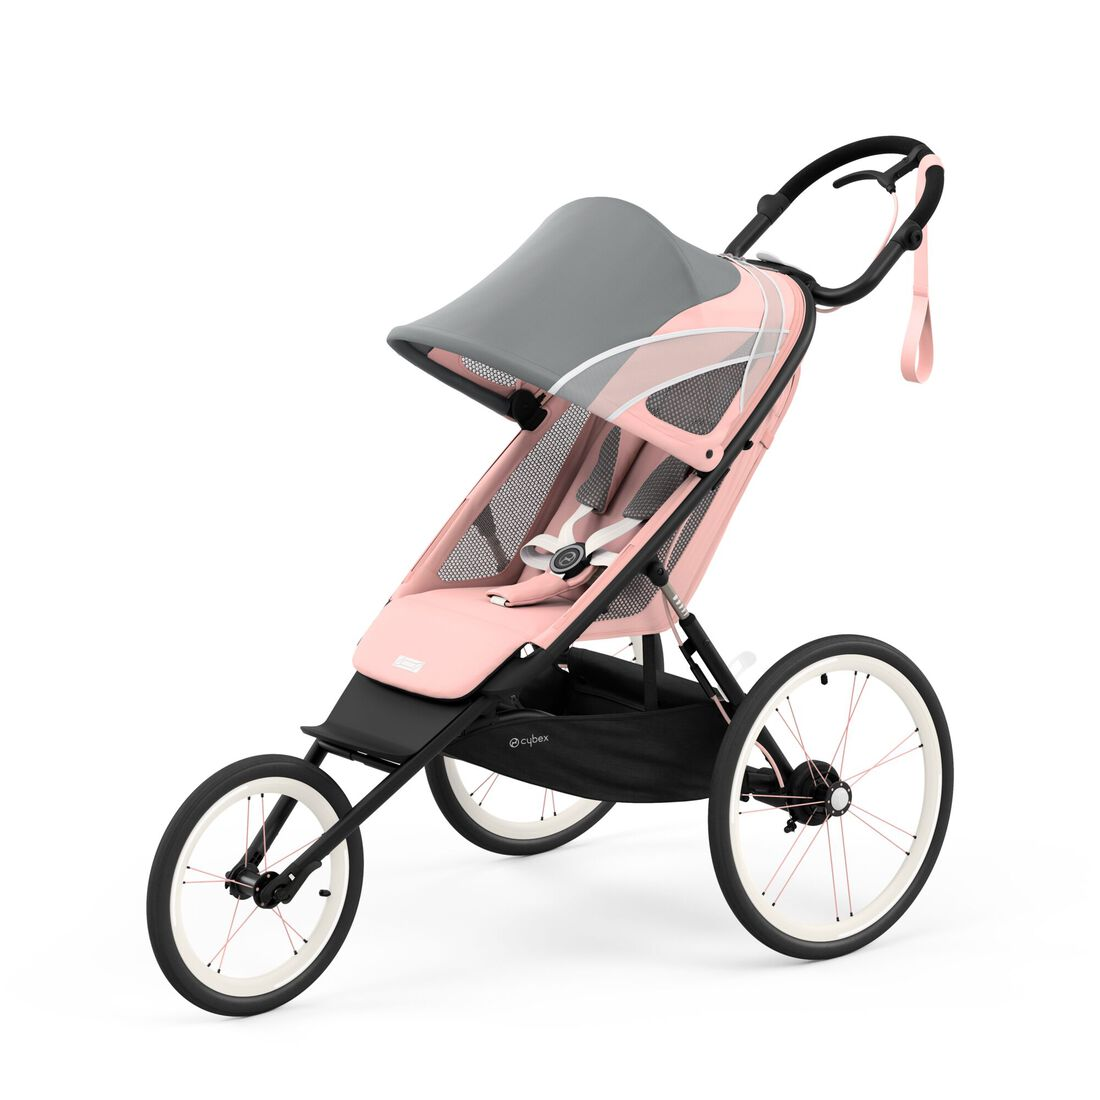 CYBEX Avi Seat Pack - Silver Pink in Silver Pink large image number 2